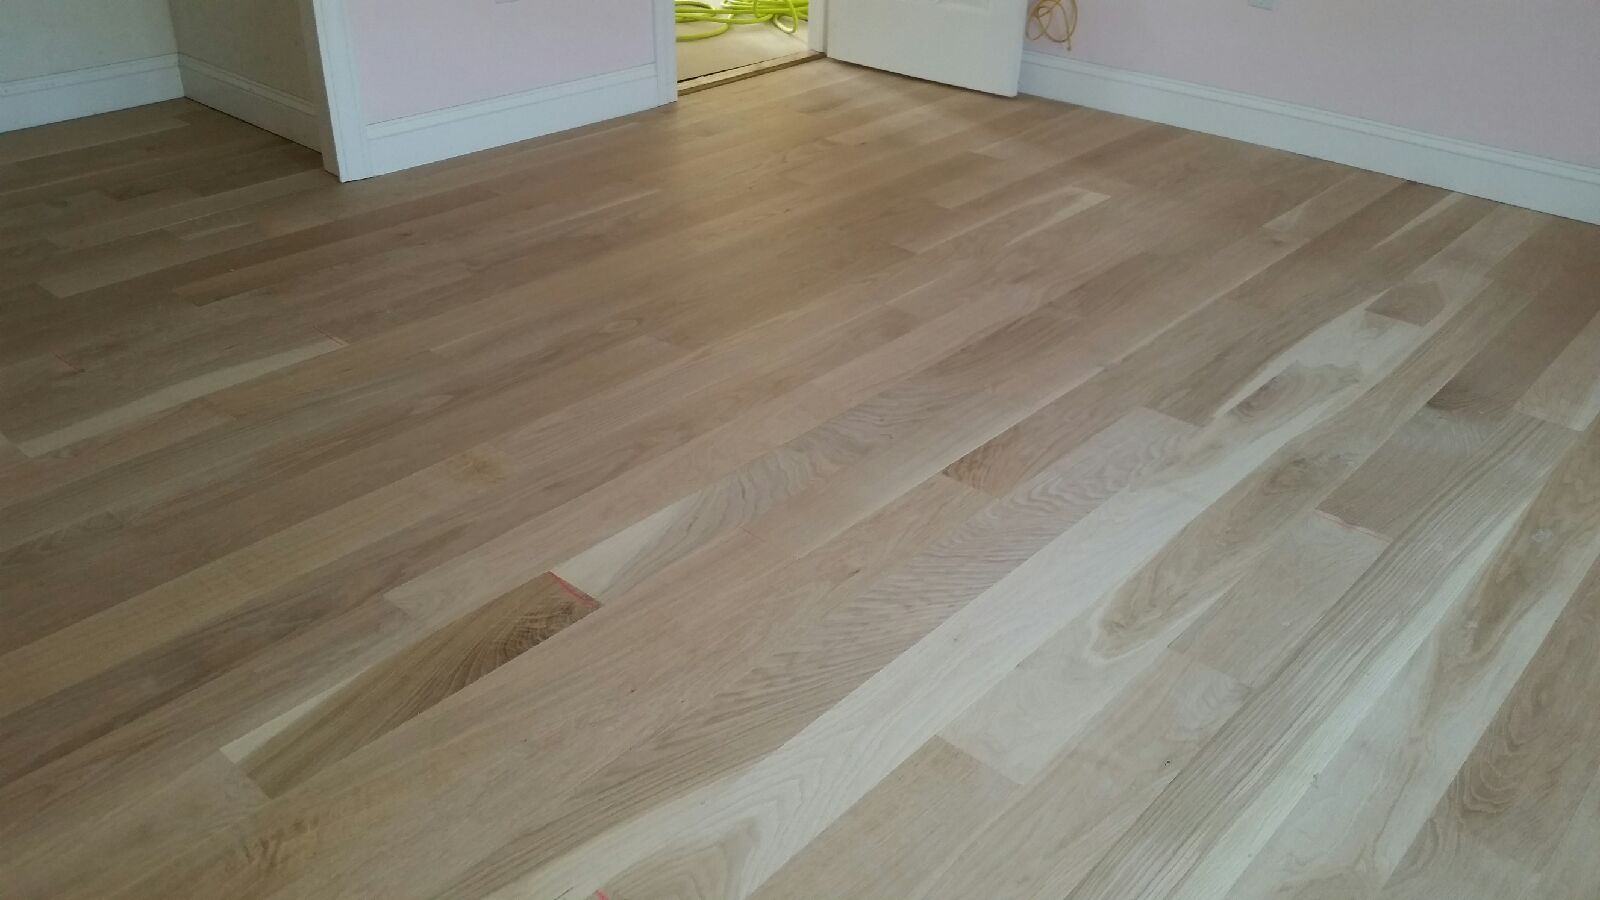 Red Oak Flooring vs White Oak Flooring The Flooring BlogThe